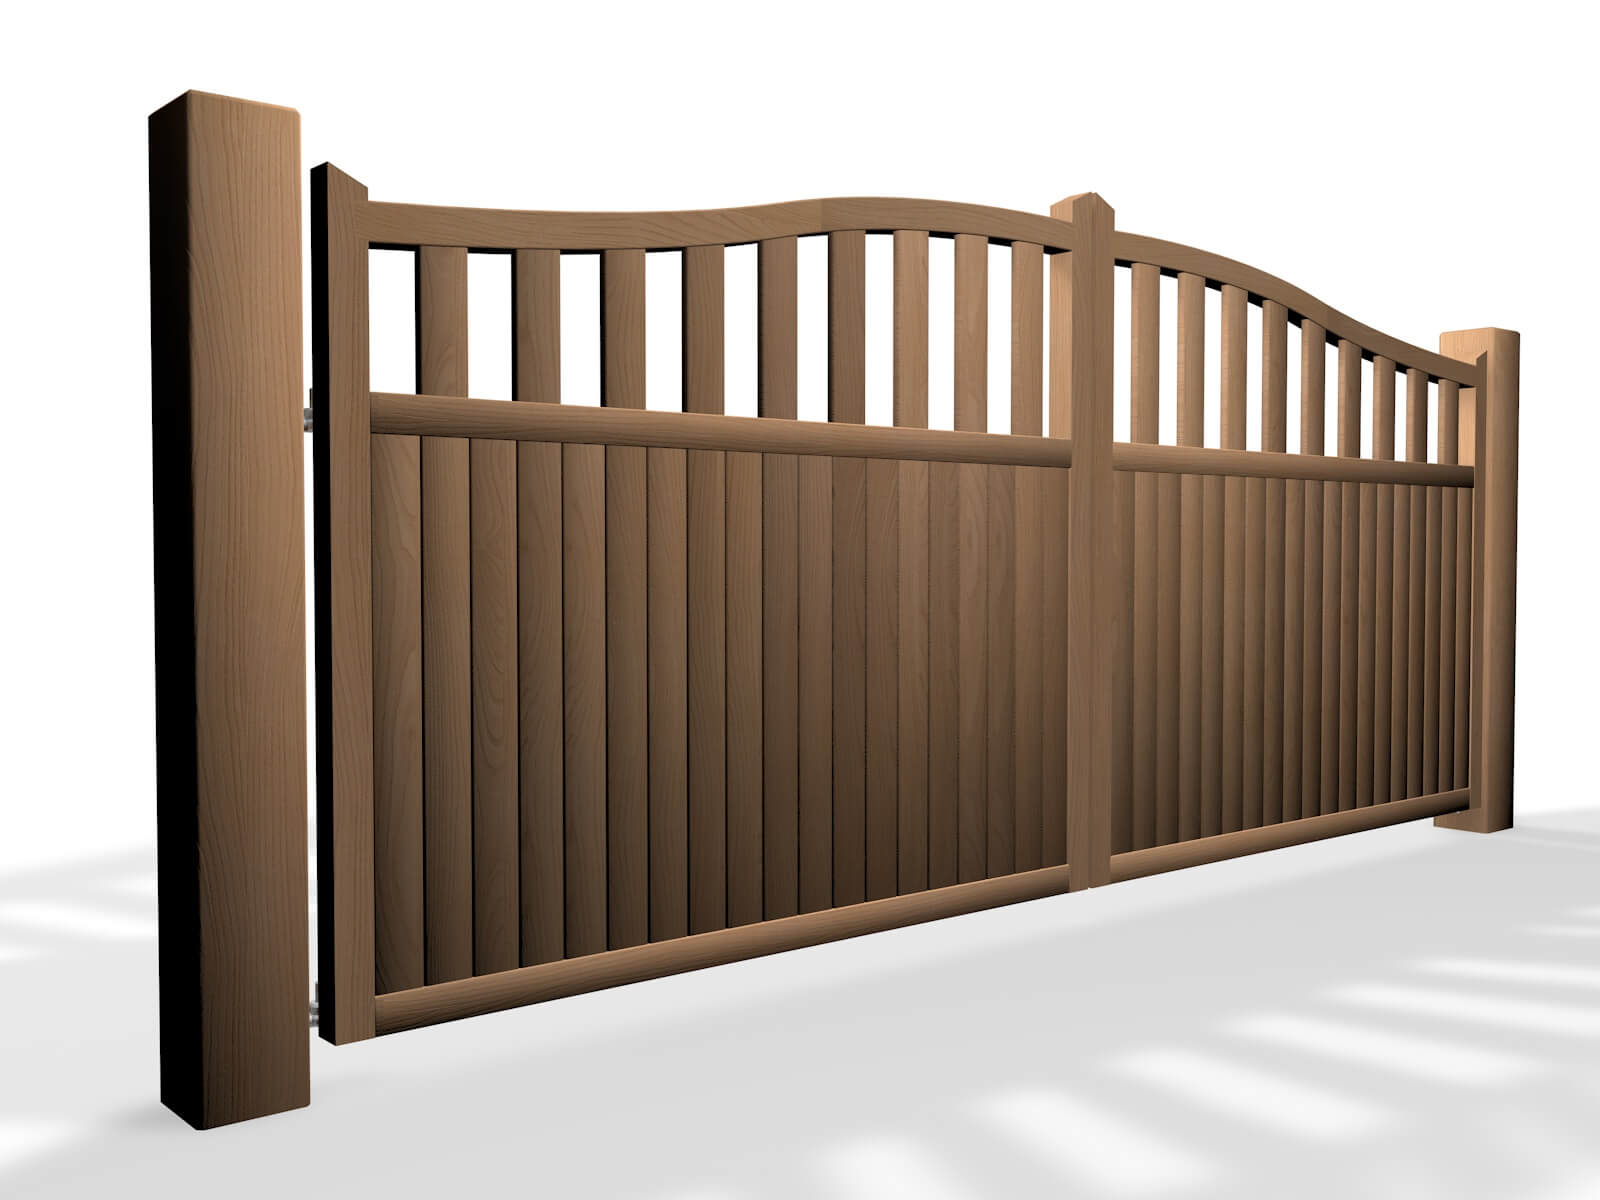 Automated Wooden bell top open-rail driveway gate by Elex Automation